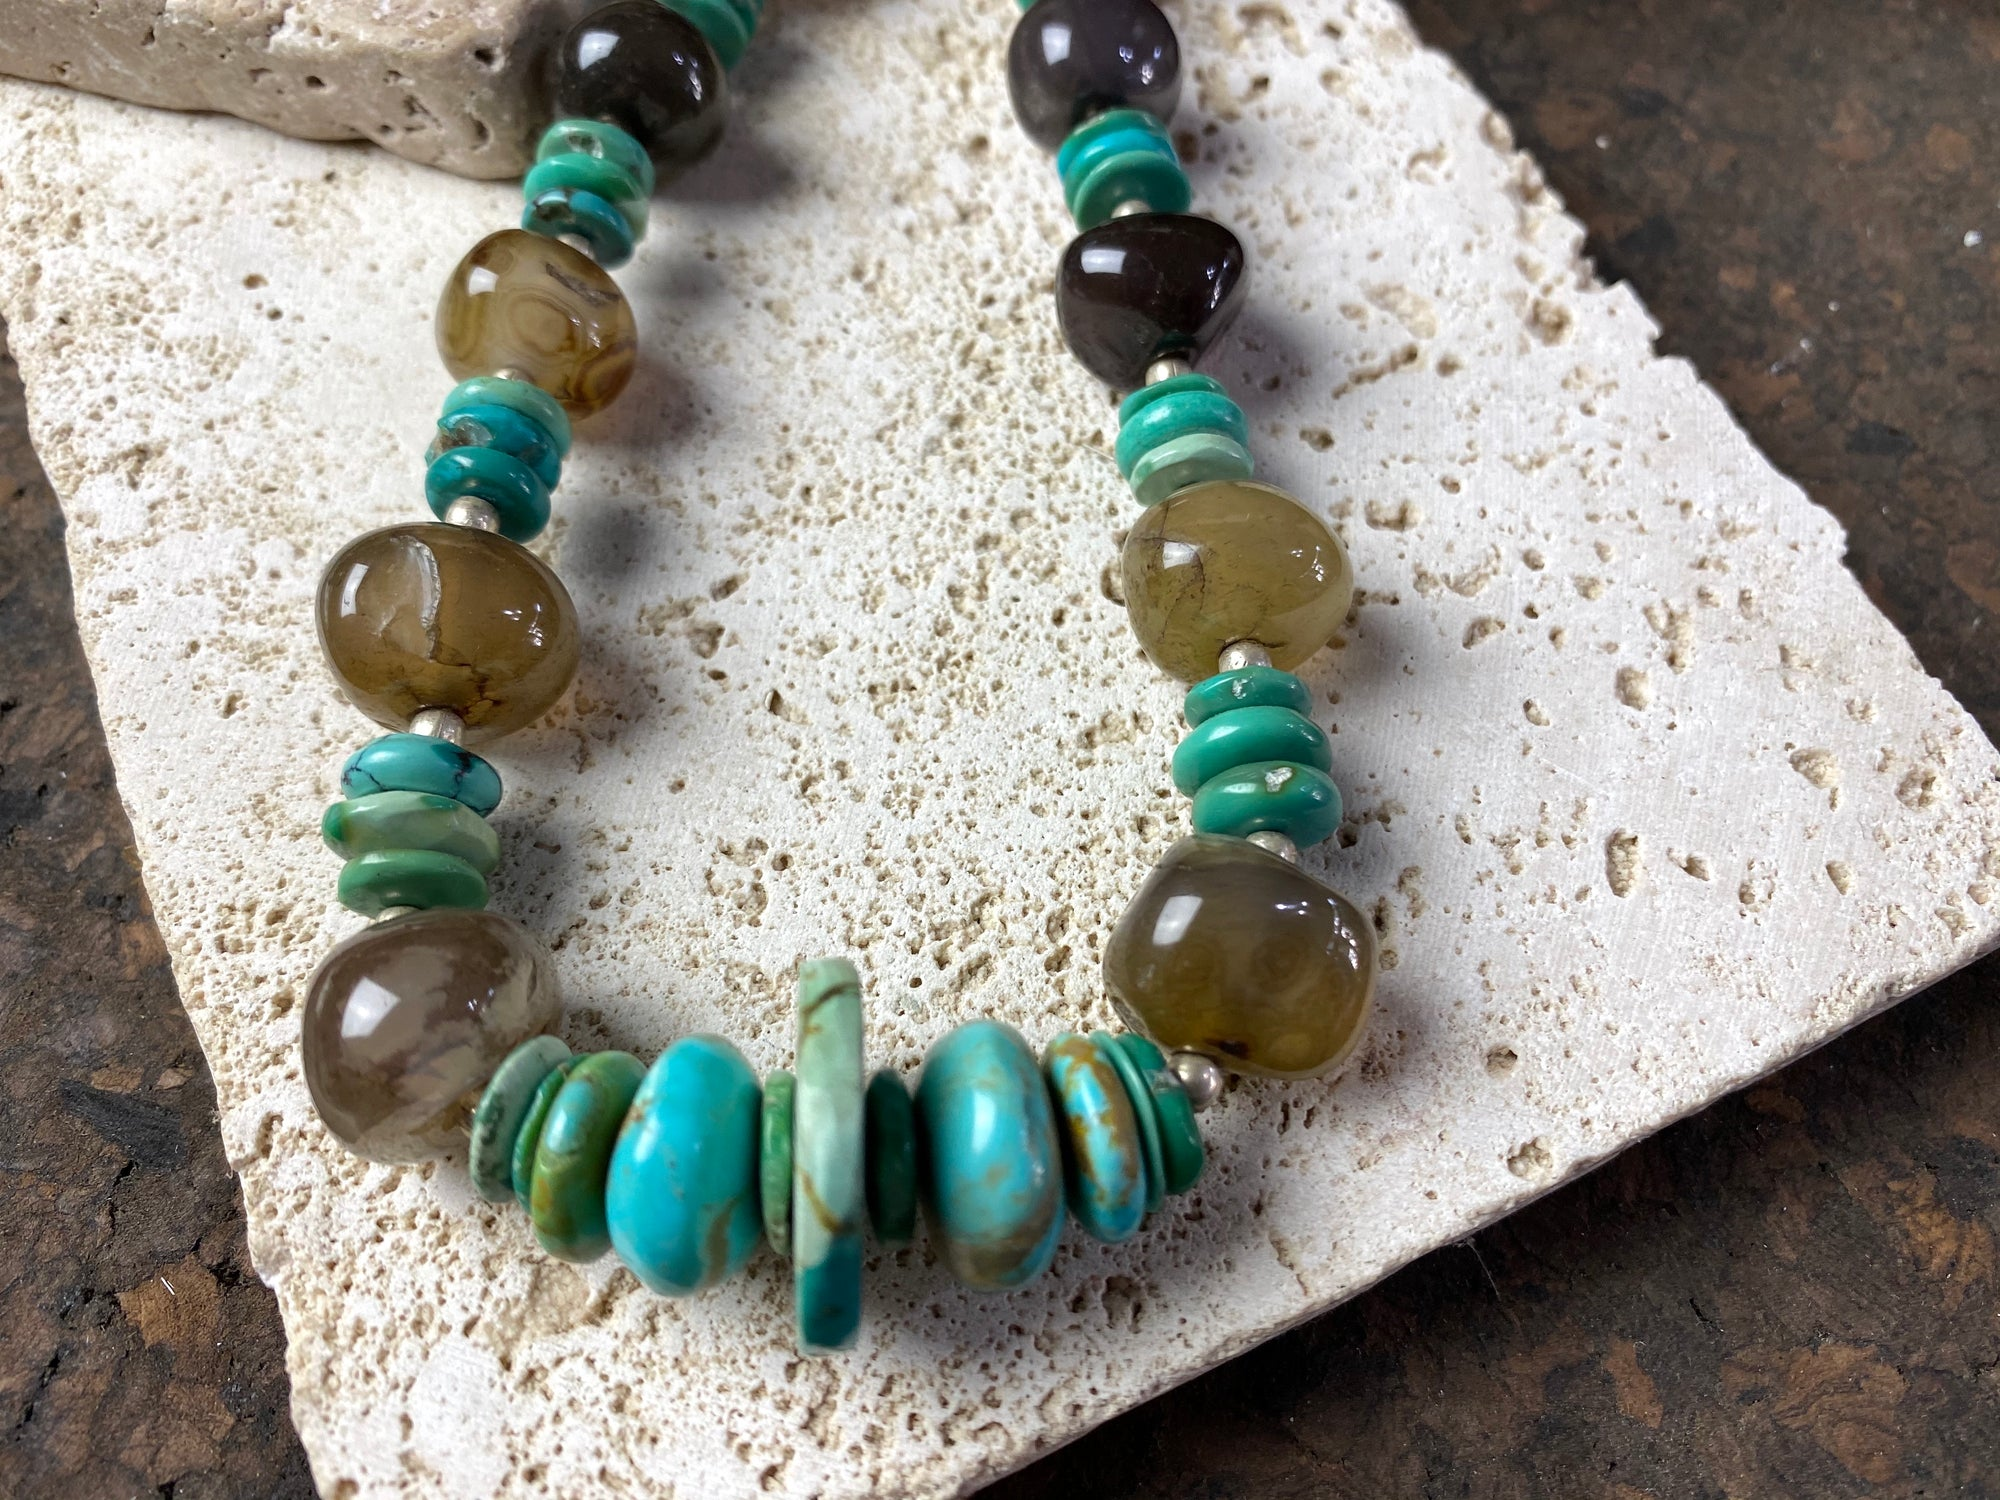 organic necklace made from polished boulder agate stones, natural blue Arizona turquoise discs and sterling silver beads, with a sterling silver hook clasp